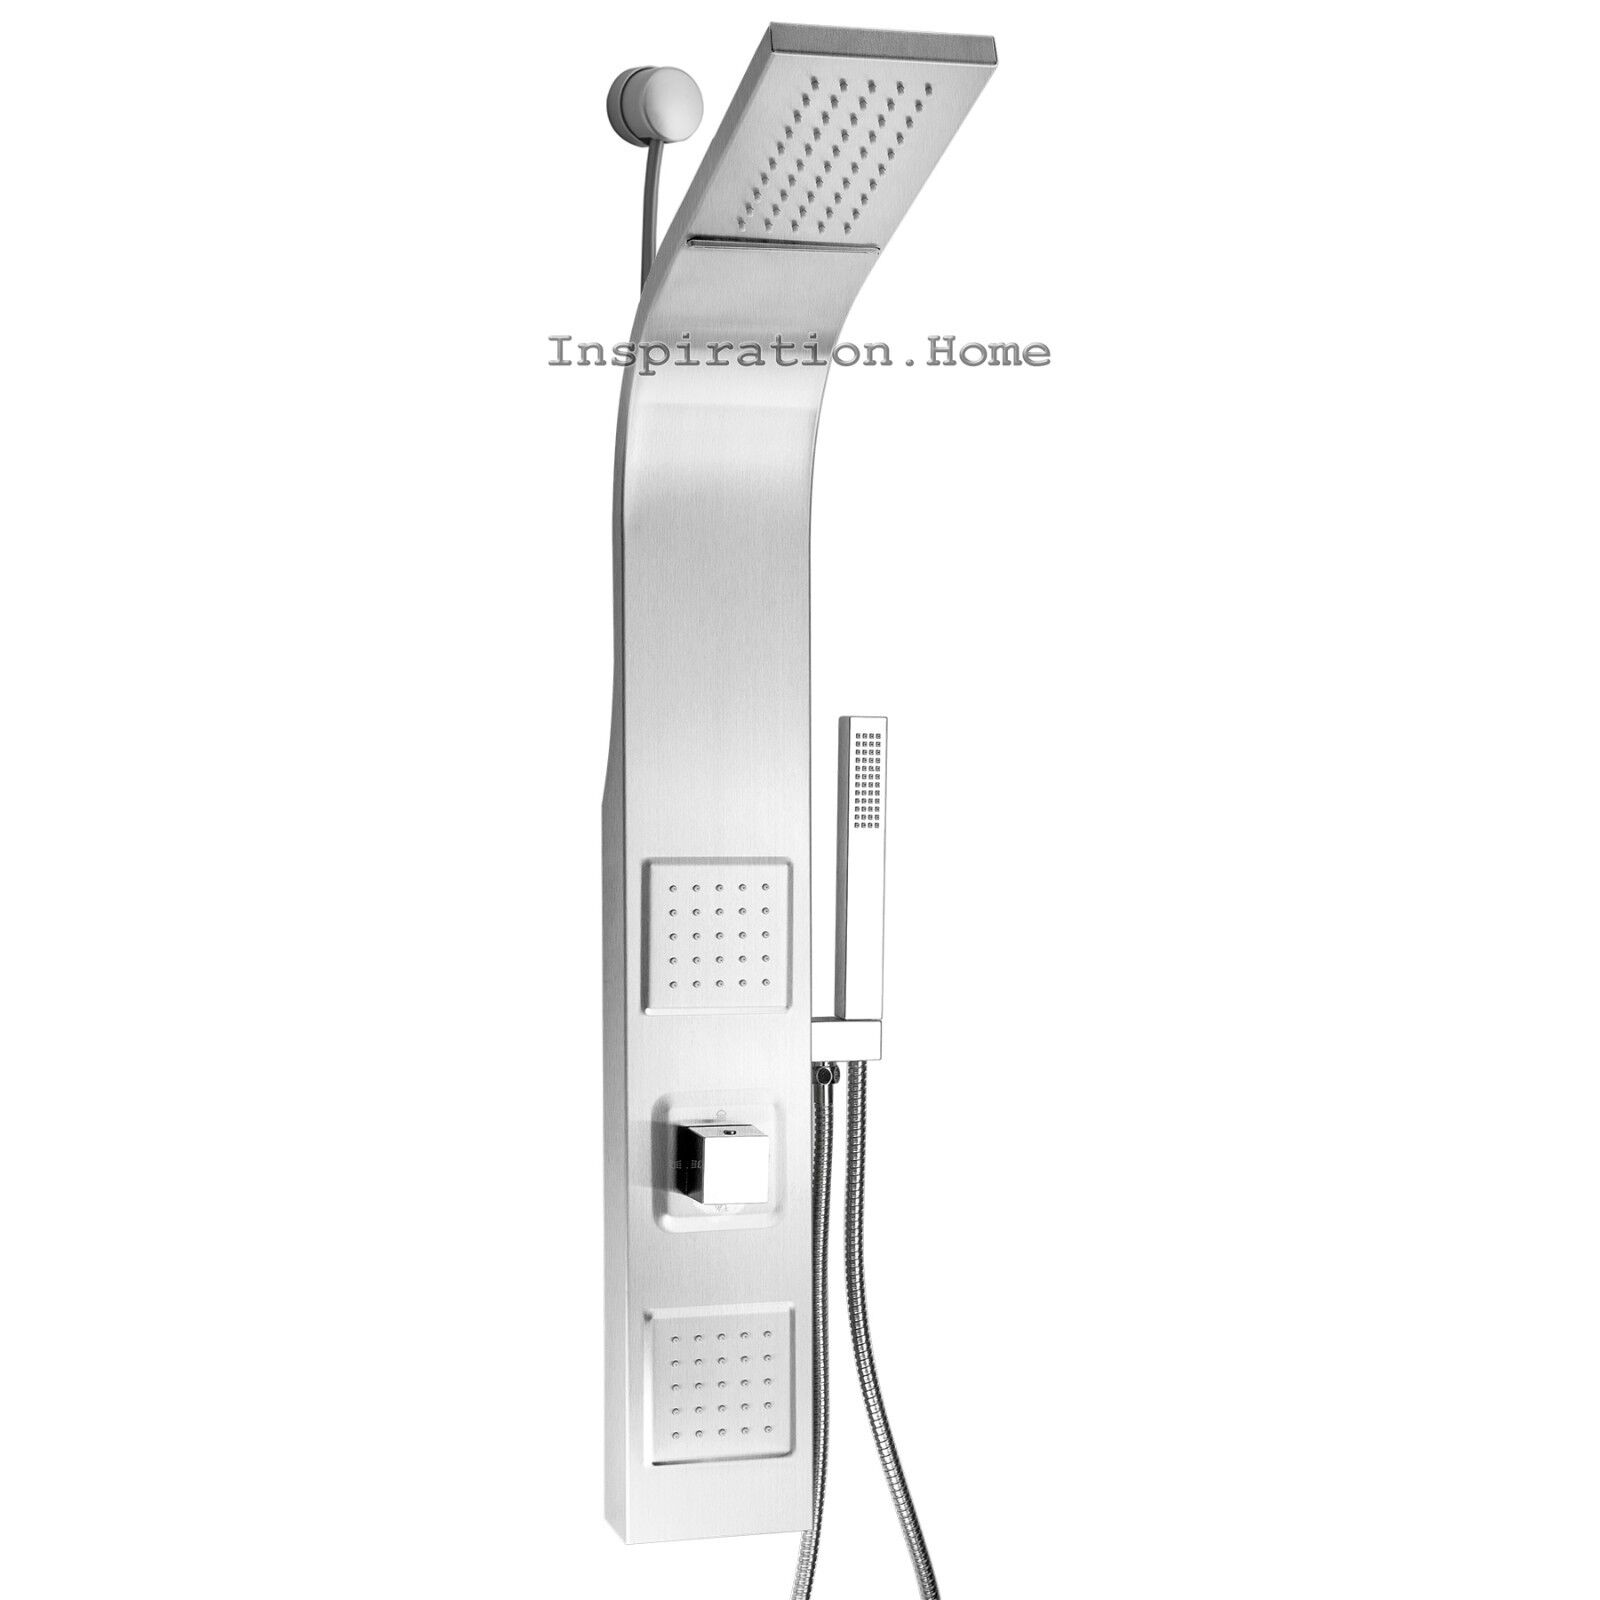 39-shower-panel-tower-handheld-shower-head-wall-mount-rainfall-waterfall-style